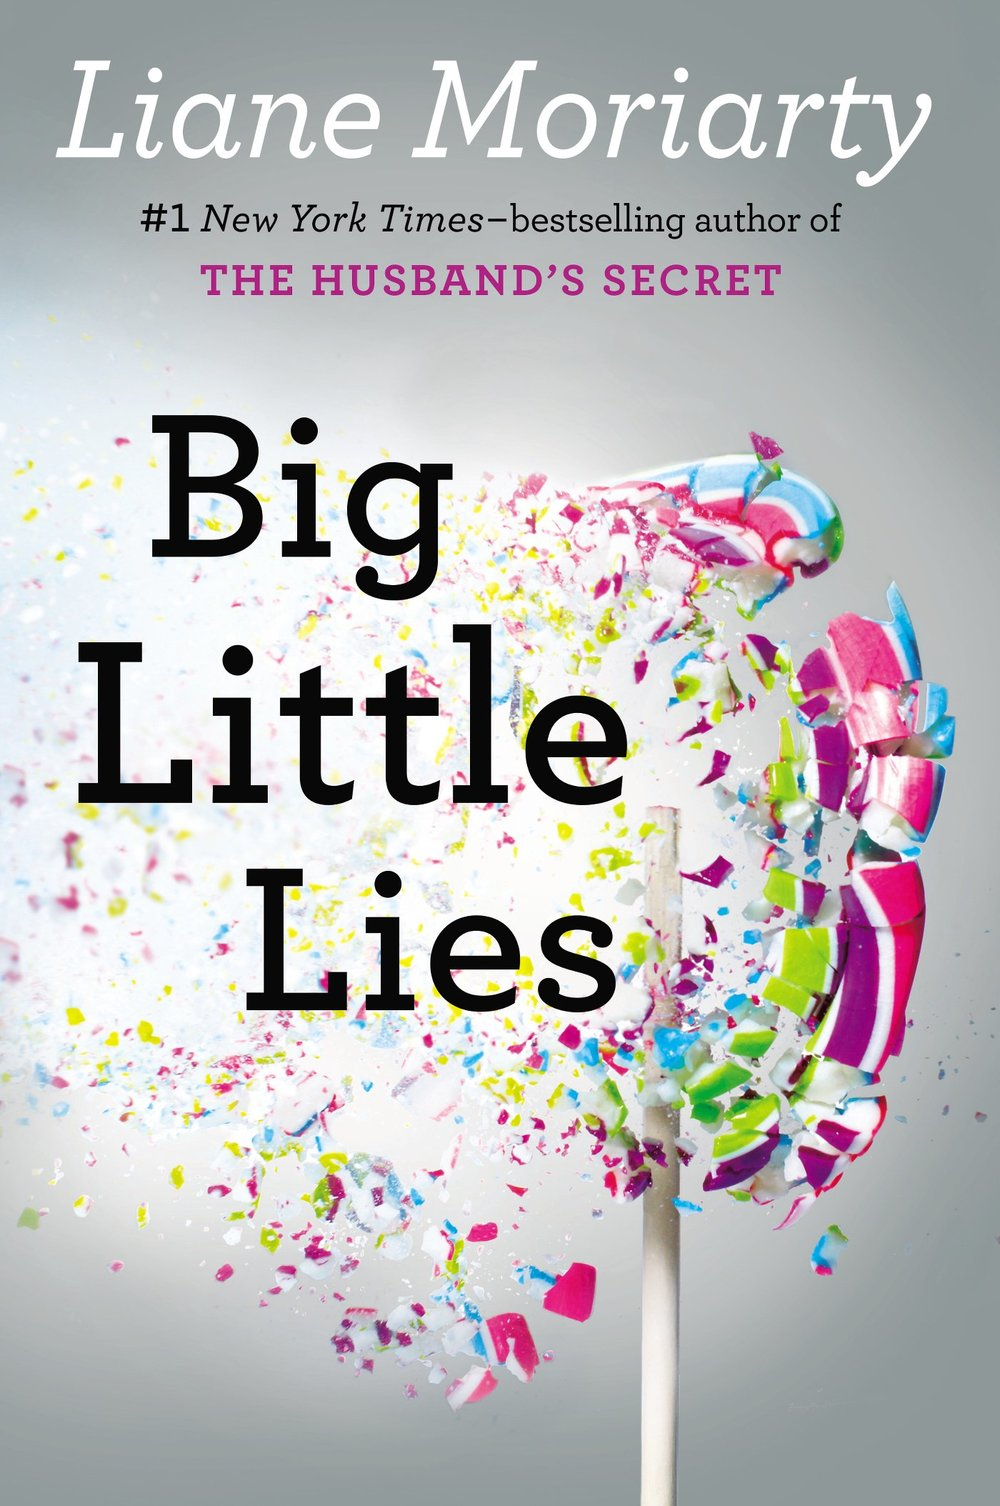 5 Books to Read This Valentine's Day: 5) Big Little Lies by Liane Moriarty